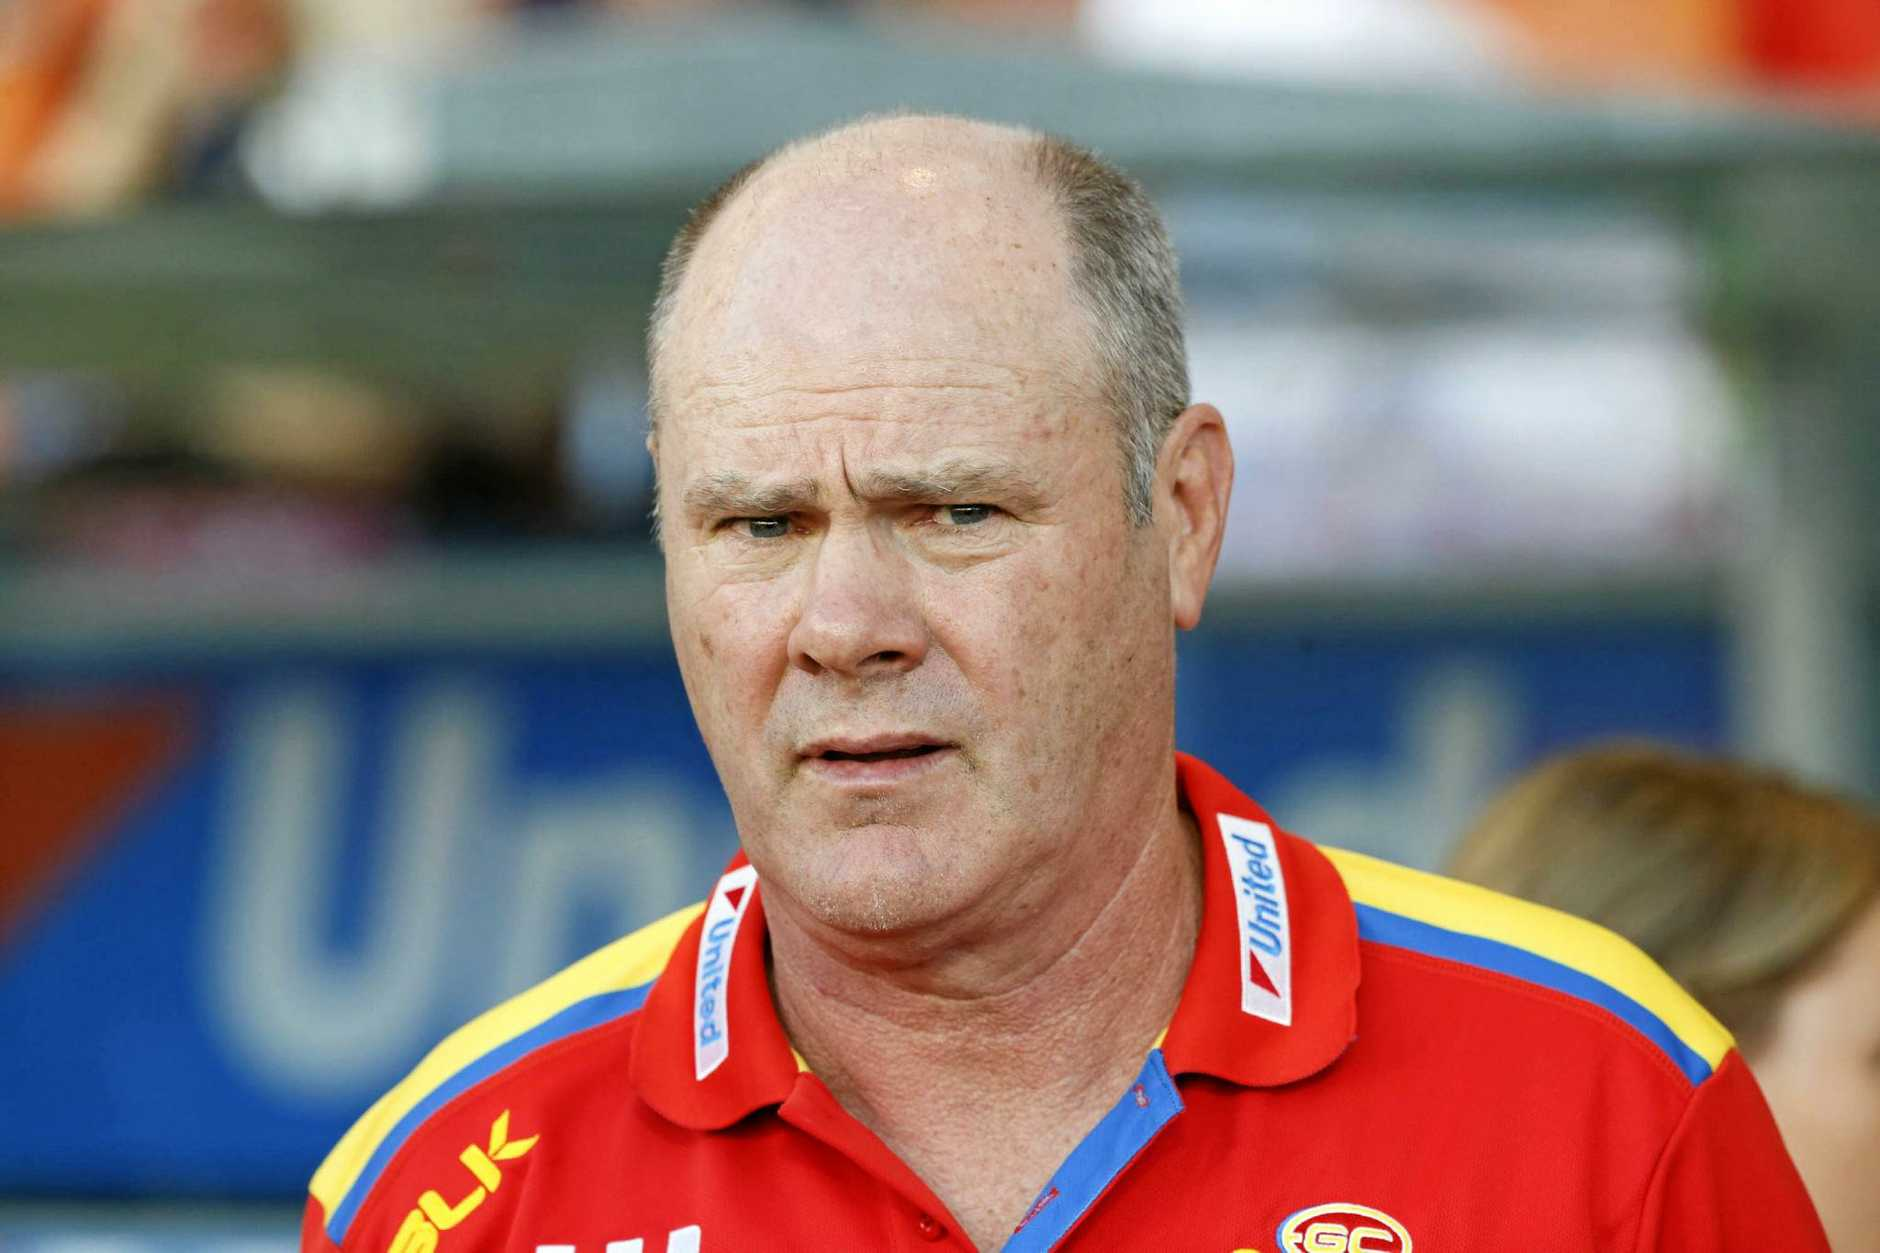 Suns coach Rodney Eade during the Round 18 AFL match between the Gold Coast Suns and the Fremantle Dockers at Metricon Stadium in Carrara on the Gold Coast, Saturday, July 23, 2016. (AAP Image/Glenn Hunt) NO ARCHIVING, EDITORIAL USE ONLY